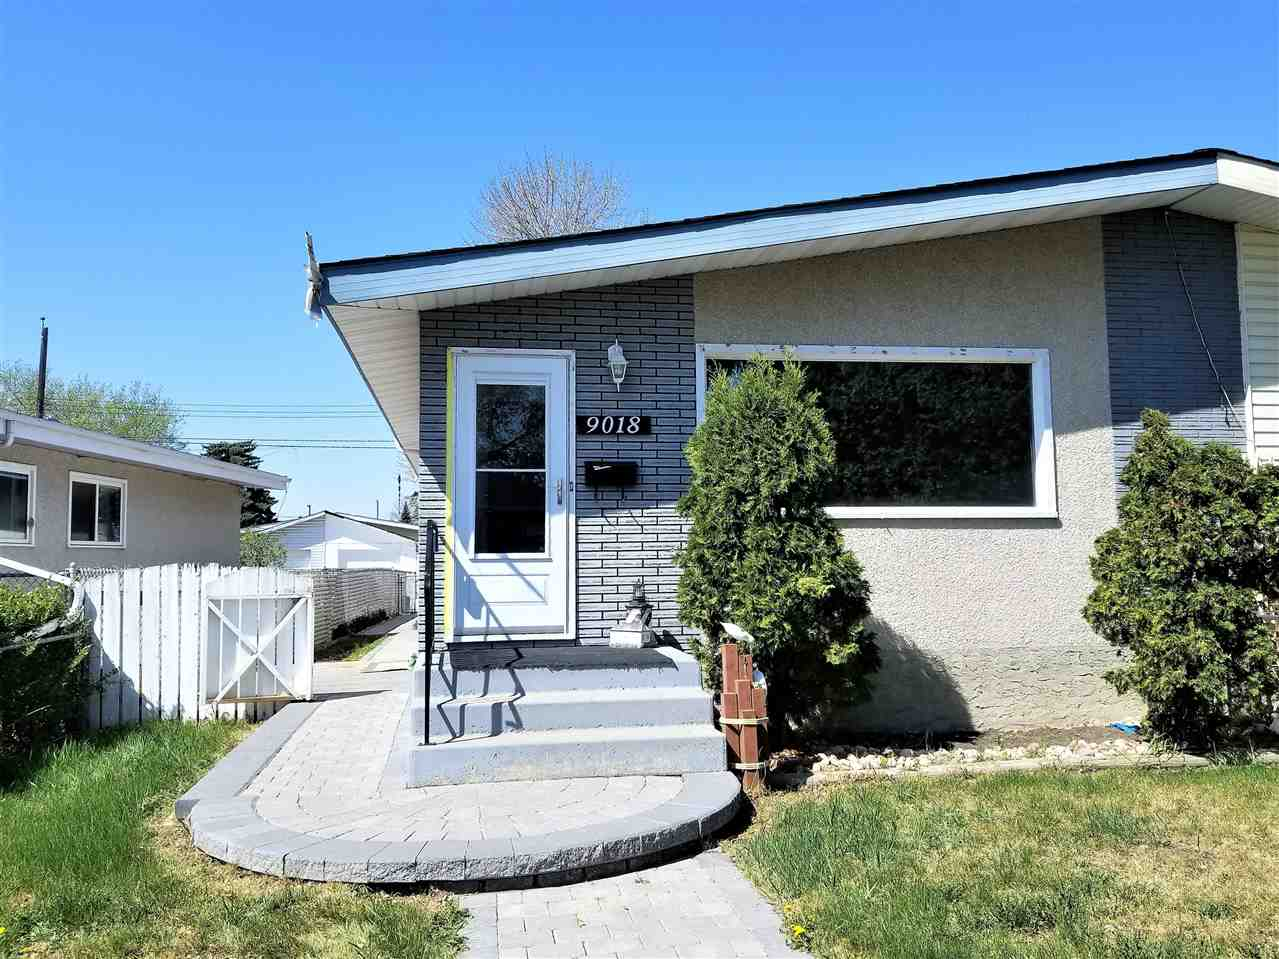 Looking for an Affordable Home Close to Schools, Parks, Playgrounds, Shopping and only 15 mins from Downtown? This 1/2 Duplex in Ottewell might just suit your needs! Perfect for a First Time home buyer or Investor this 3 Bedroom home with a Dining Area, & Side Entrance is perfect for teenagers and their friends. The basement is nearly finished with a 3 piece Bath, all you need to add is flooring. There is room to build a rear garage if you wish. Upgrades include some New Windows, New Front Steps, New Front Railing, New front & side stone Walkway (worth 10K), New Hot water Tank & Newer Laminate on the Main floor. This home has 100 Amp Service, is a reasonable distance to Vimy Ridge Hockey Academy, Bonnie Doon & Capilano Mall.